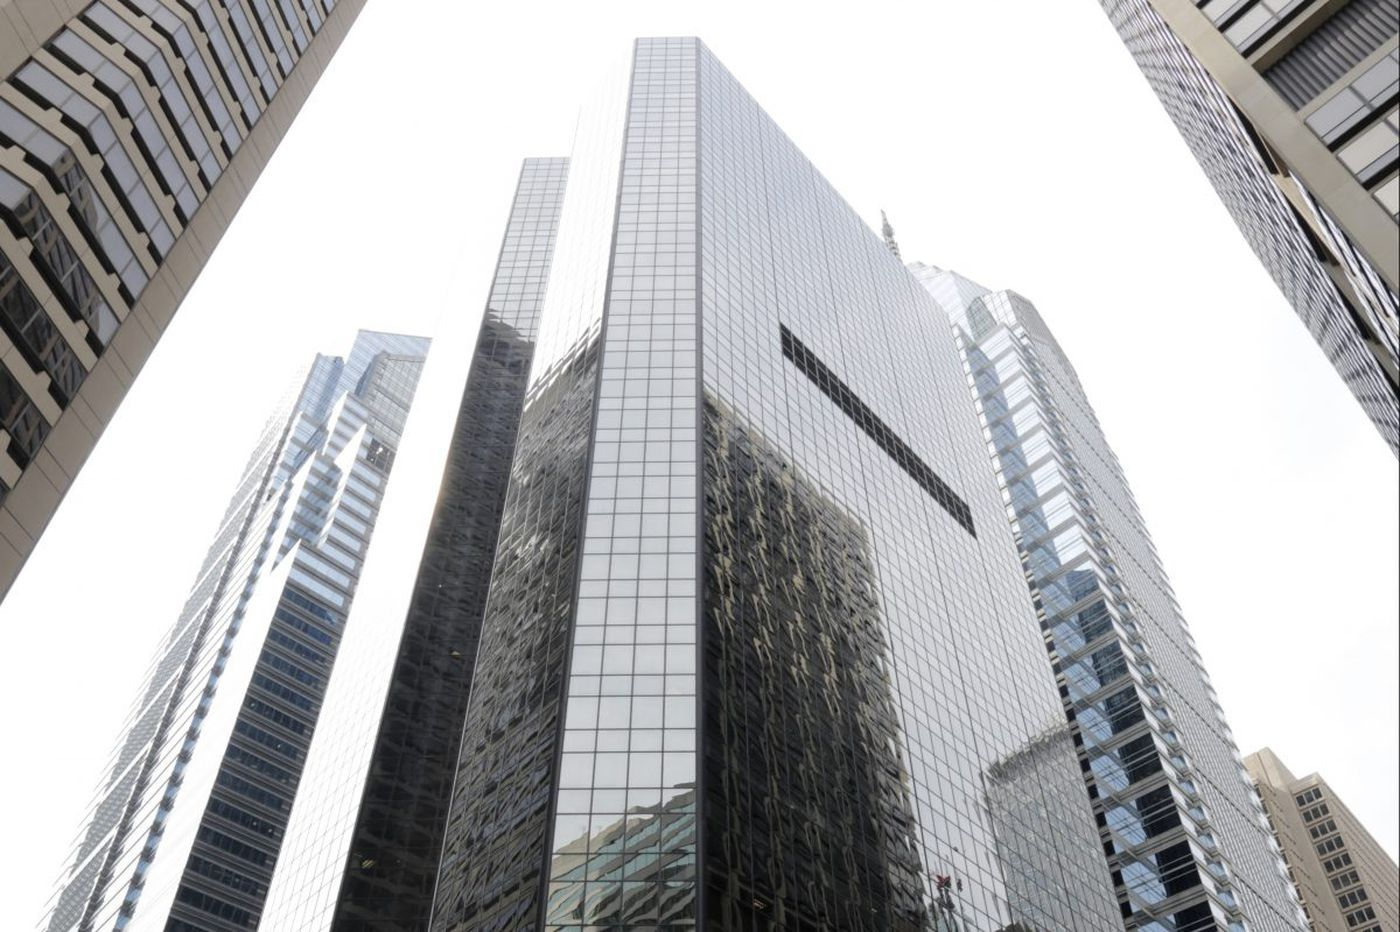 Equity Commonwealth of Chicago is selling 1600 Market St. office tower